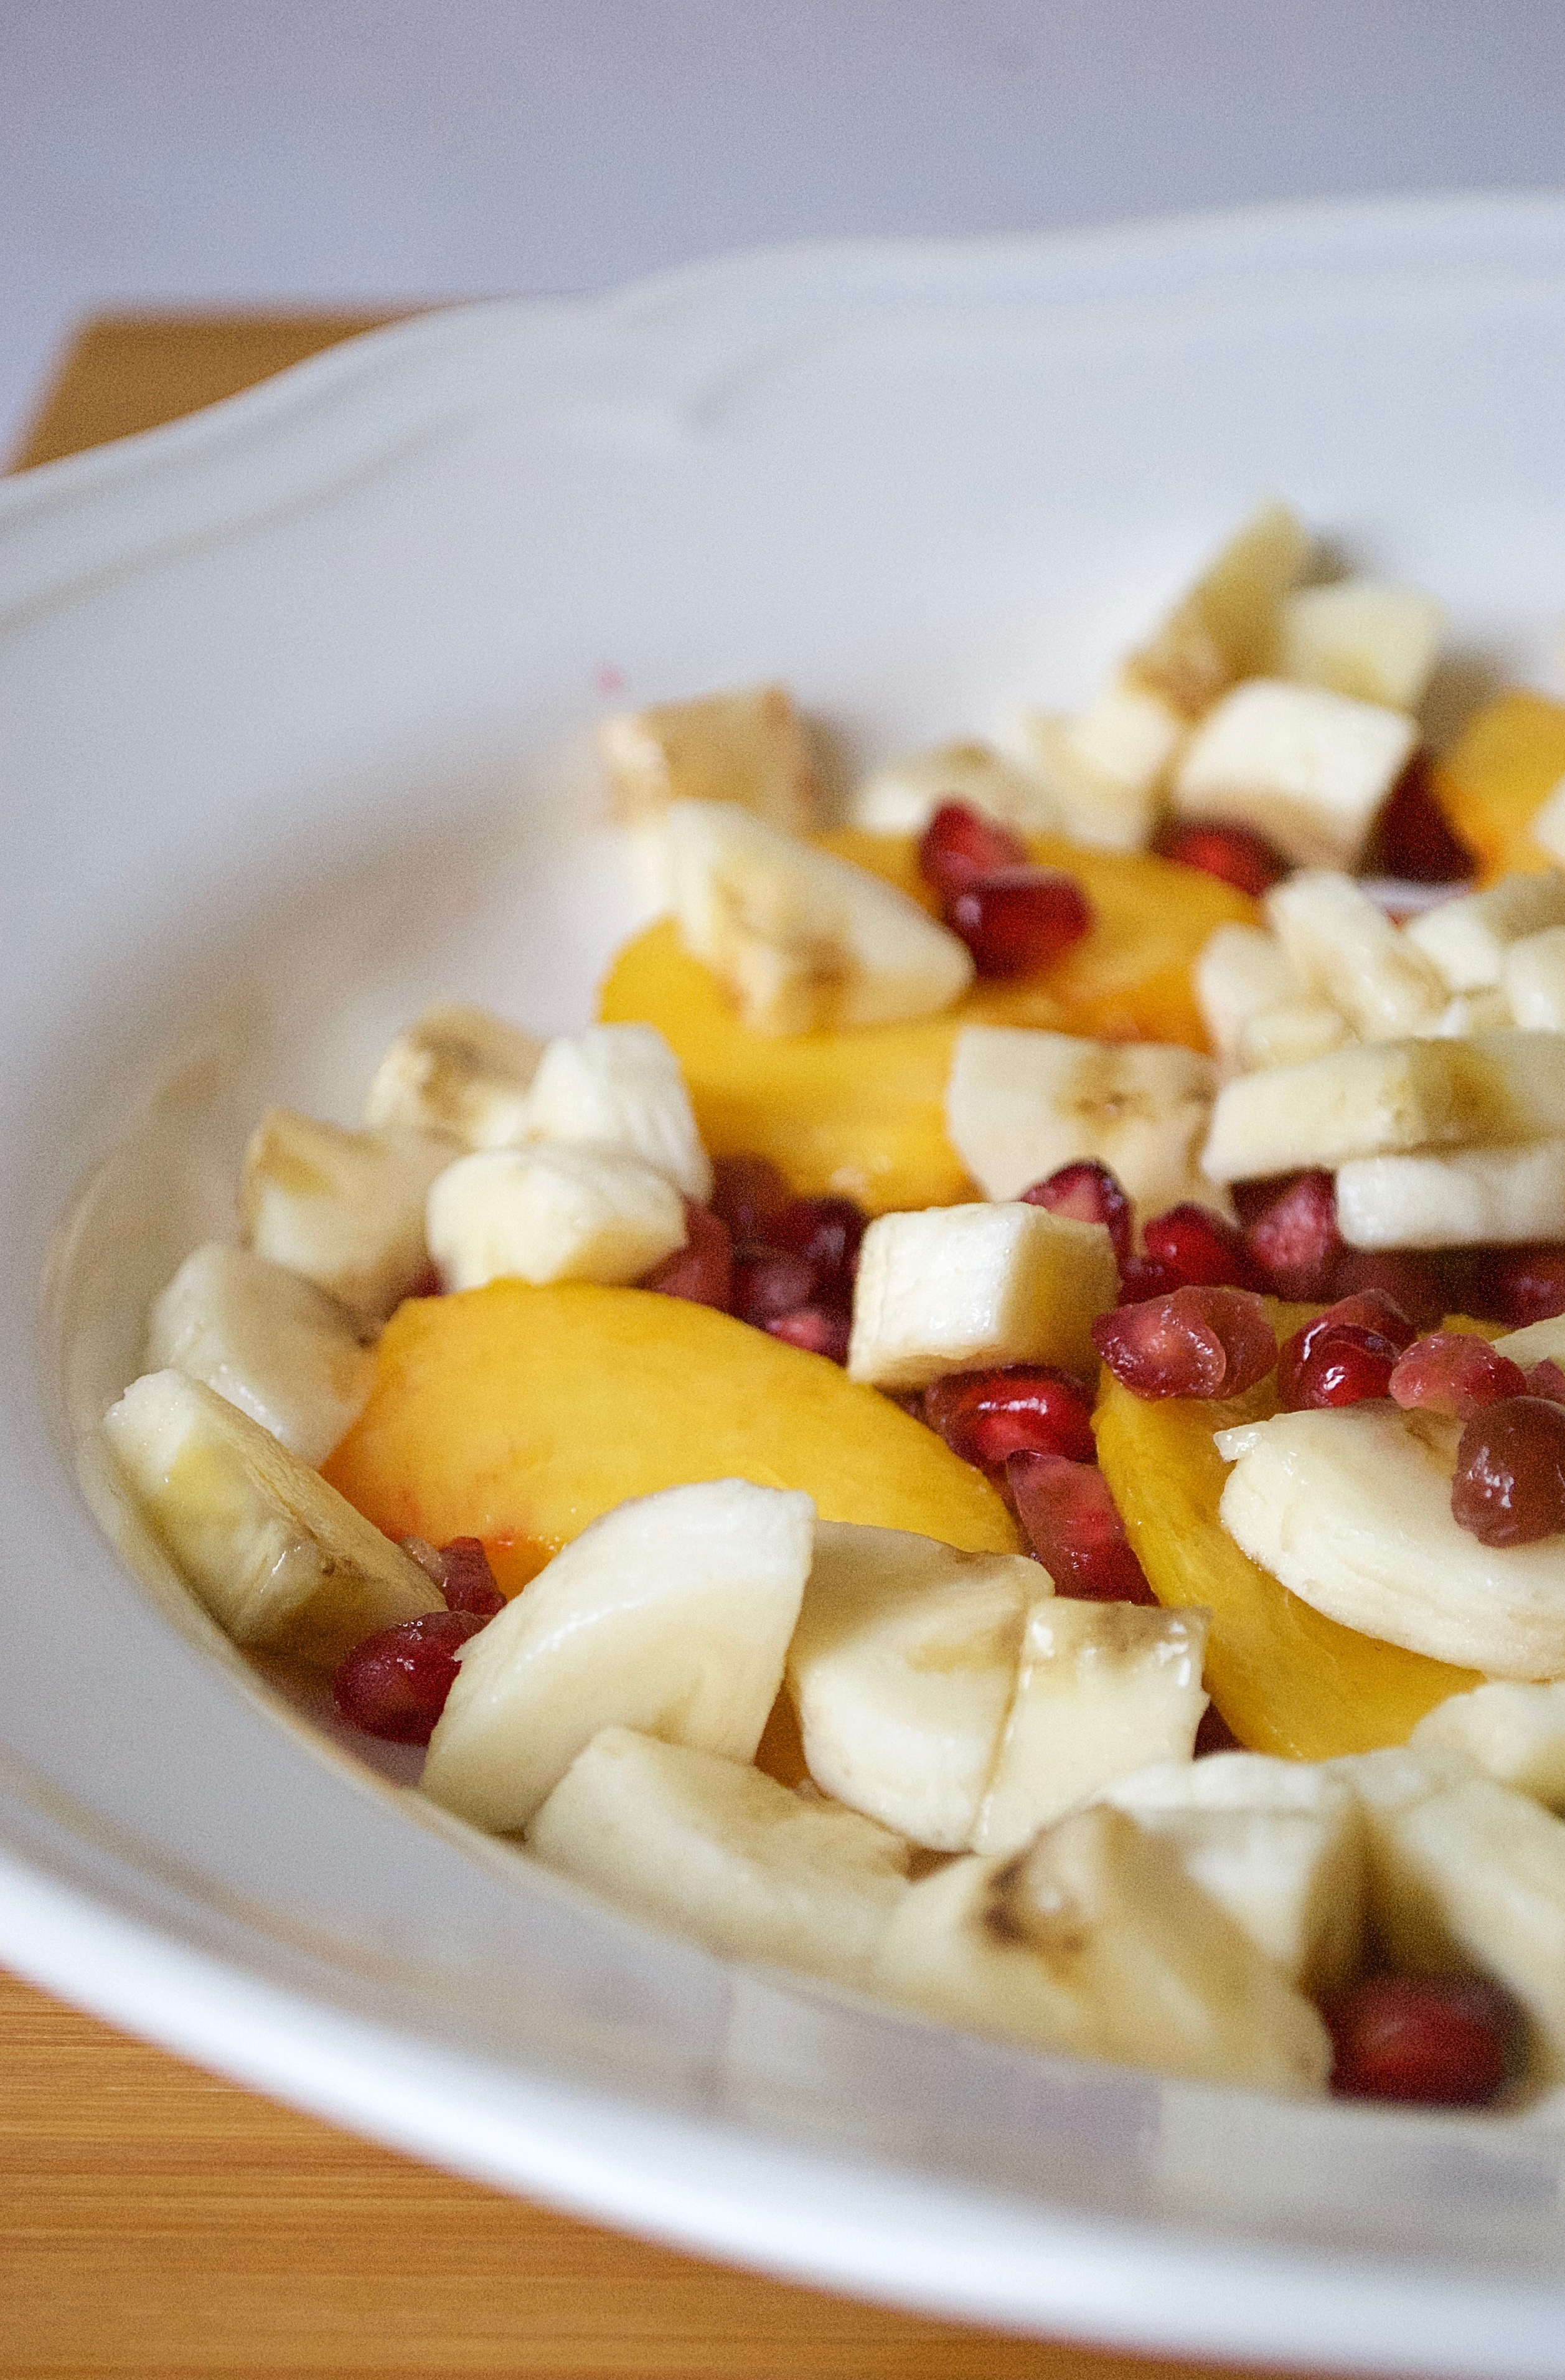 Banana, Peach and Pomegranate Fruit Salad